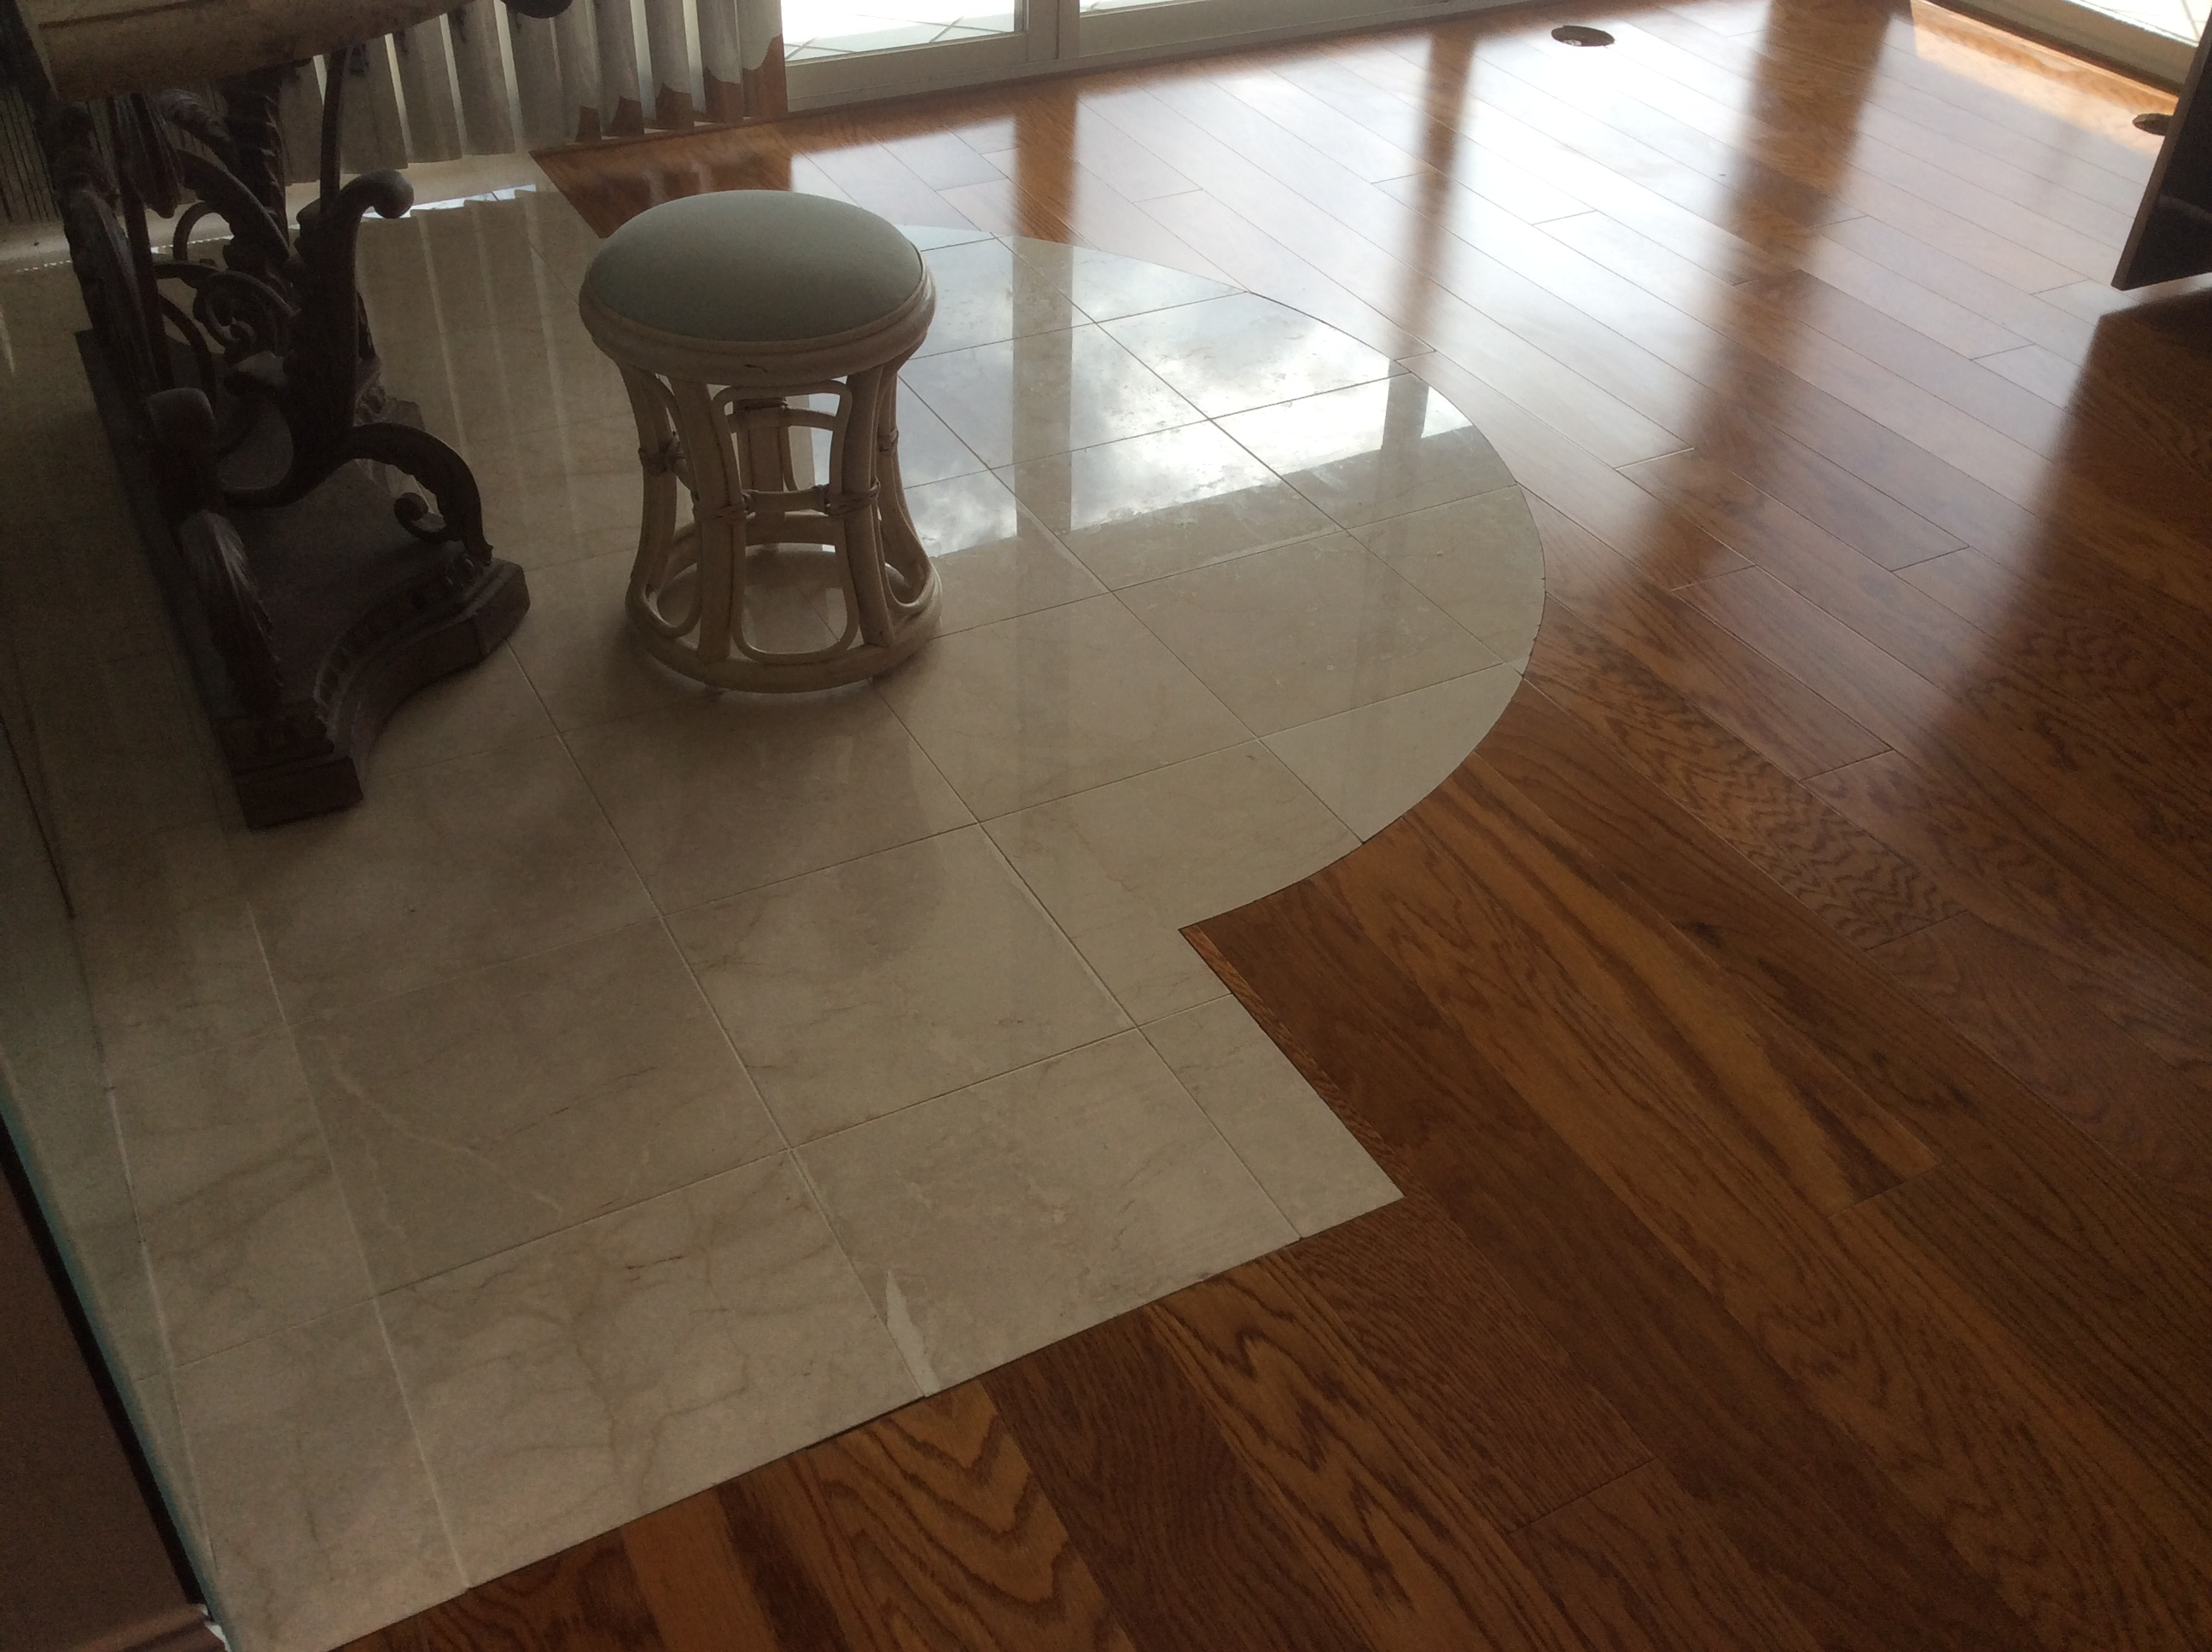 laminate much by beach installed residential tuesday jacksonville in flooring how install floor filed is under aaa january rehab blog